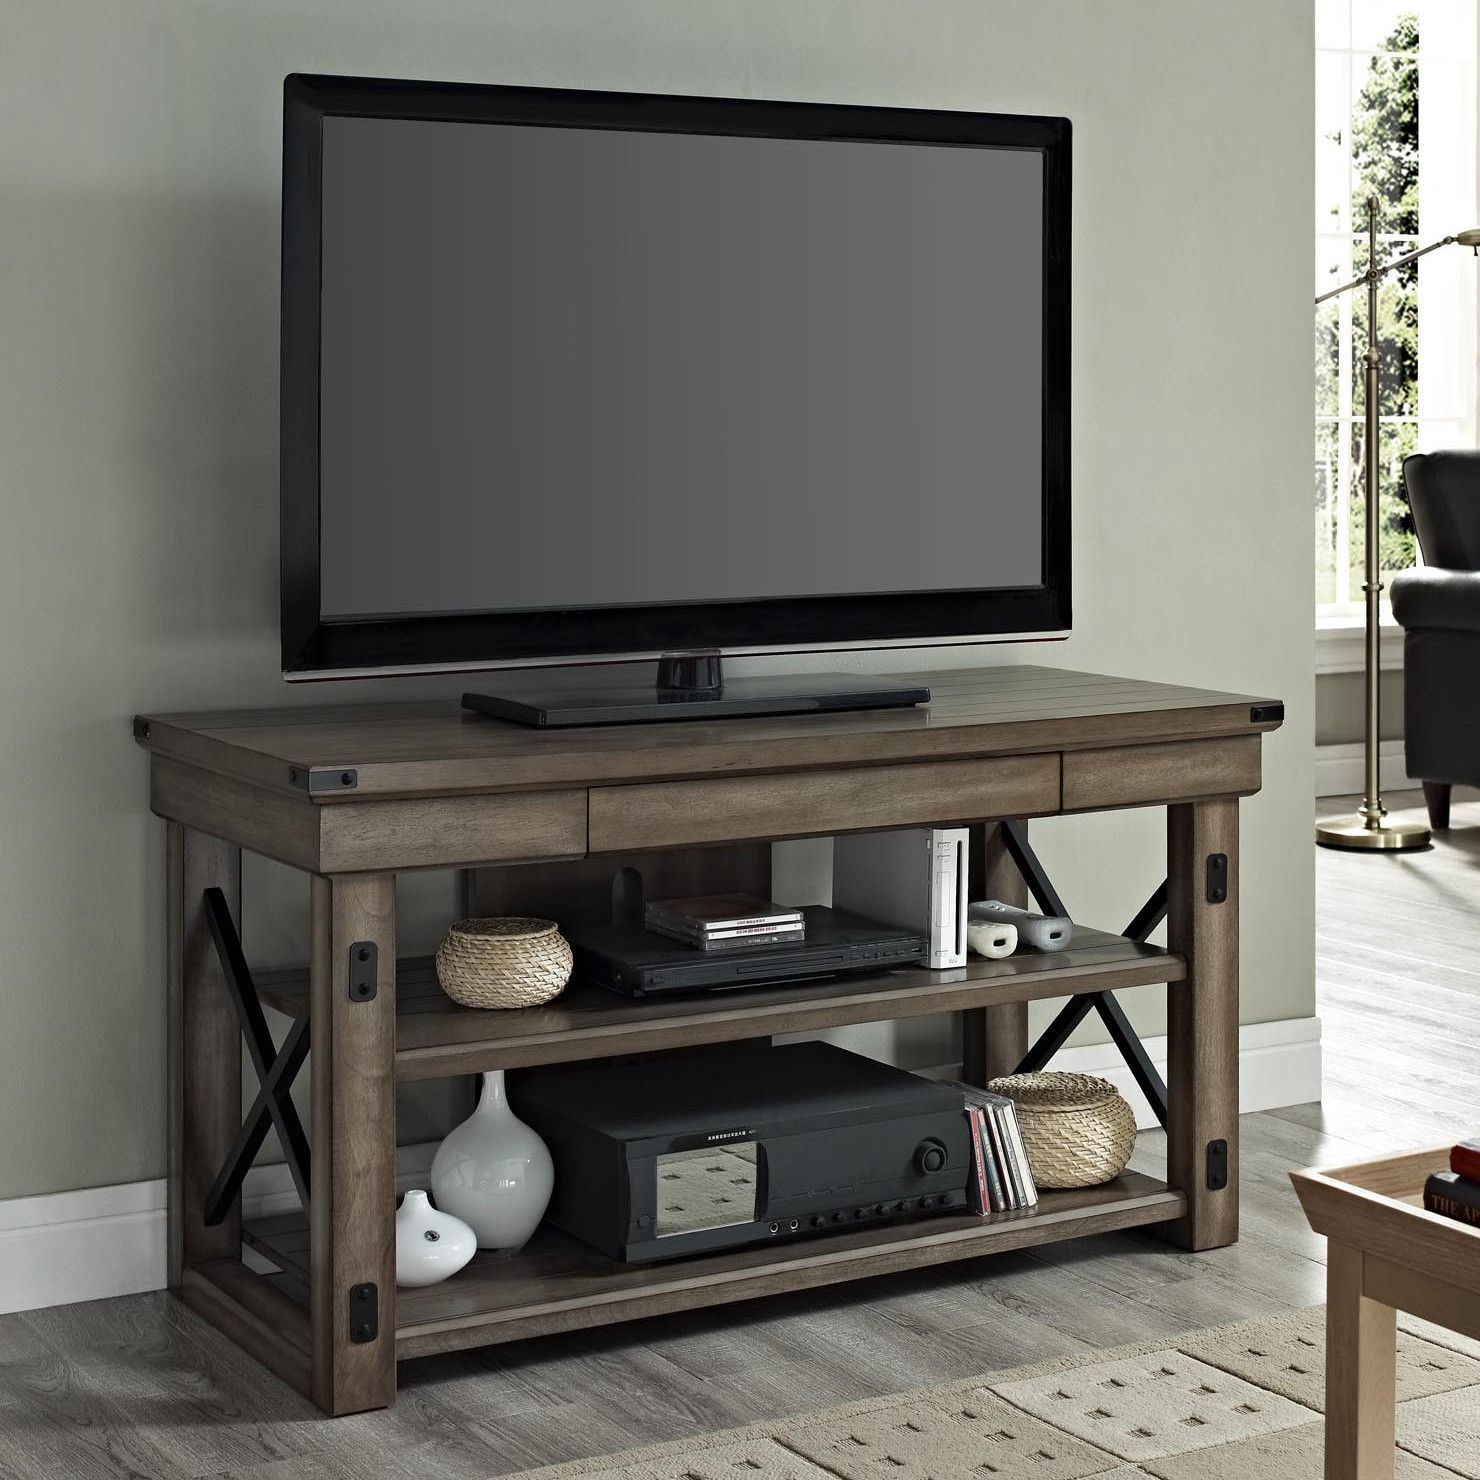 062ff49cb61776690a1731486a056fe4 - Better Homes And Gardens Falls Creek Tv Stand